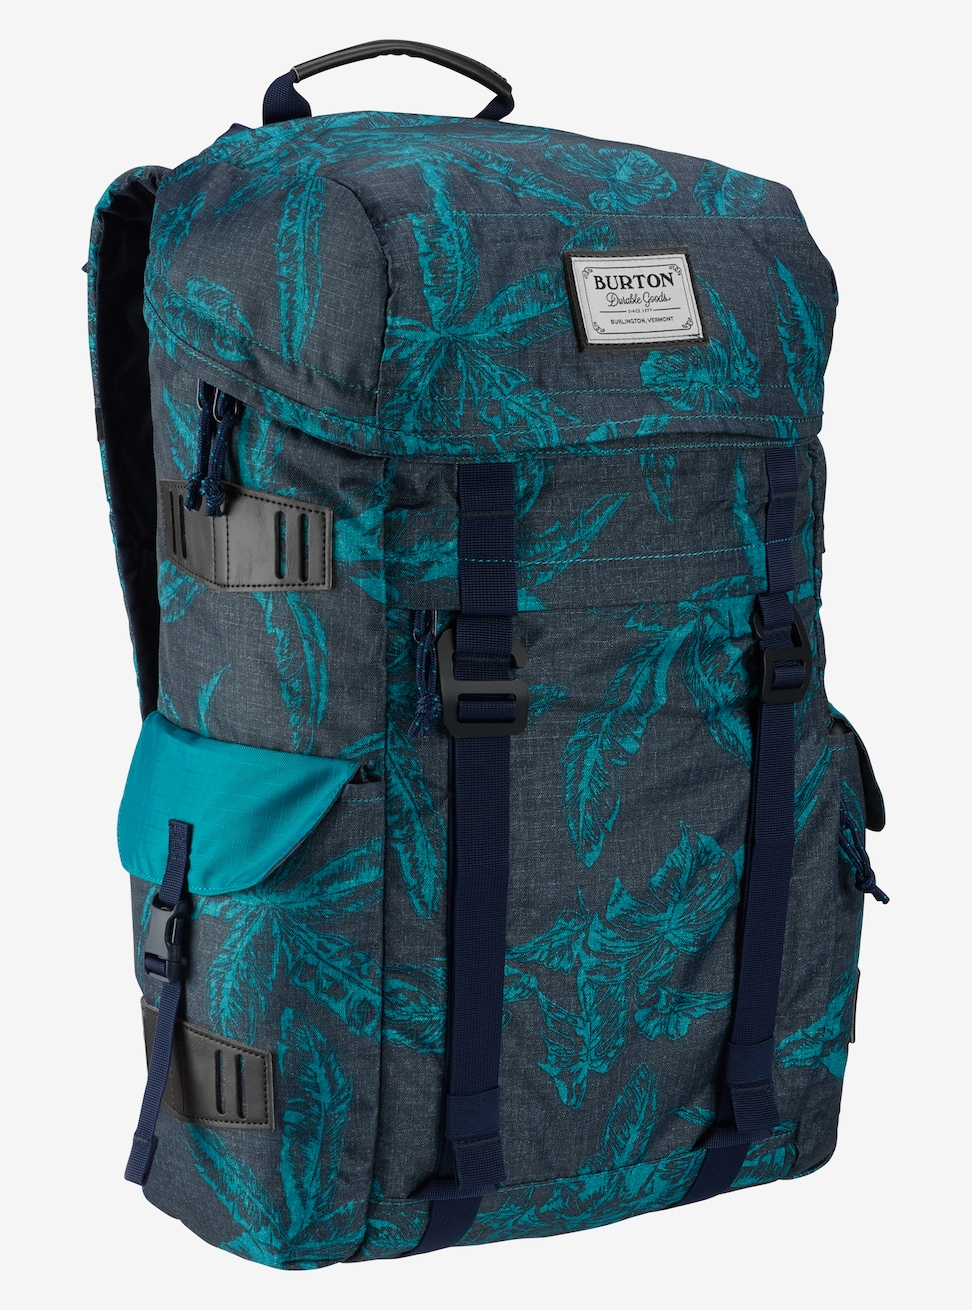 Tropical Annex travel backpack by Burton